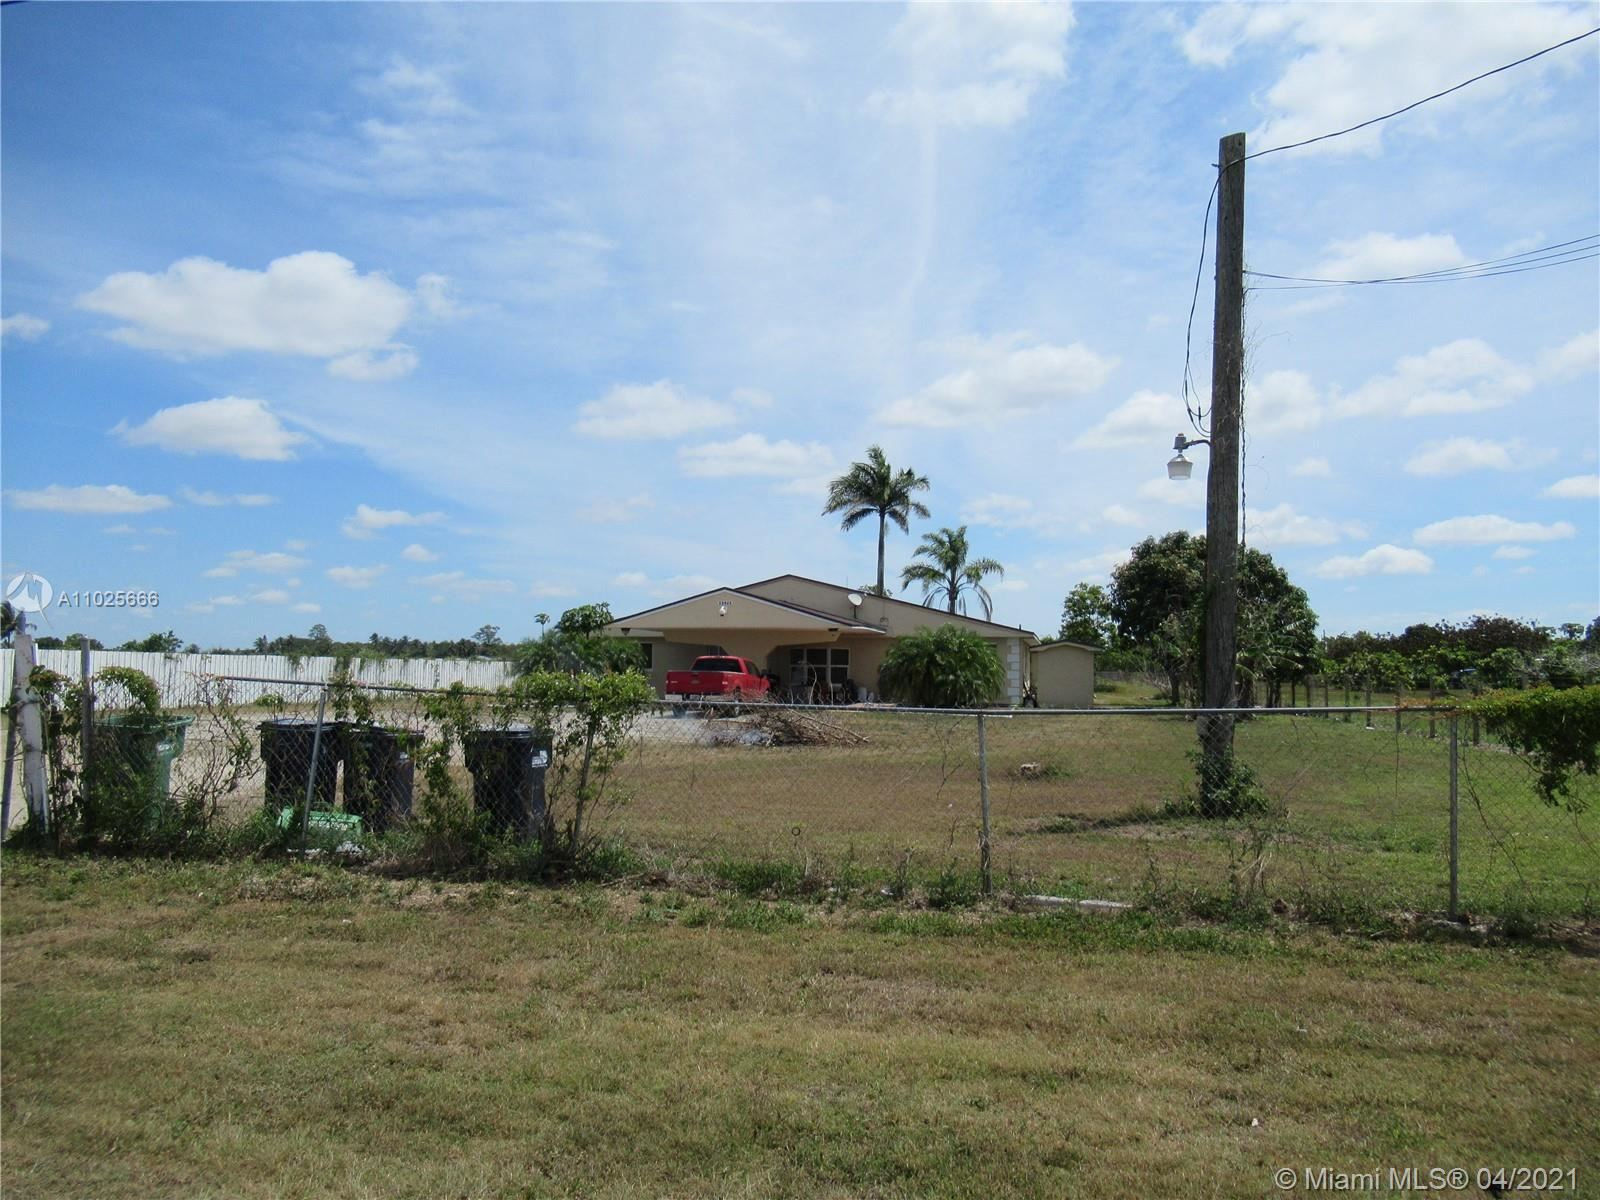 25425 SW 212th Ave, Homestead, FL 33031 - #: A11025666